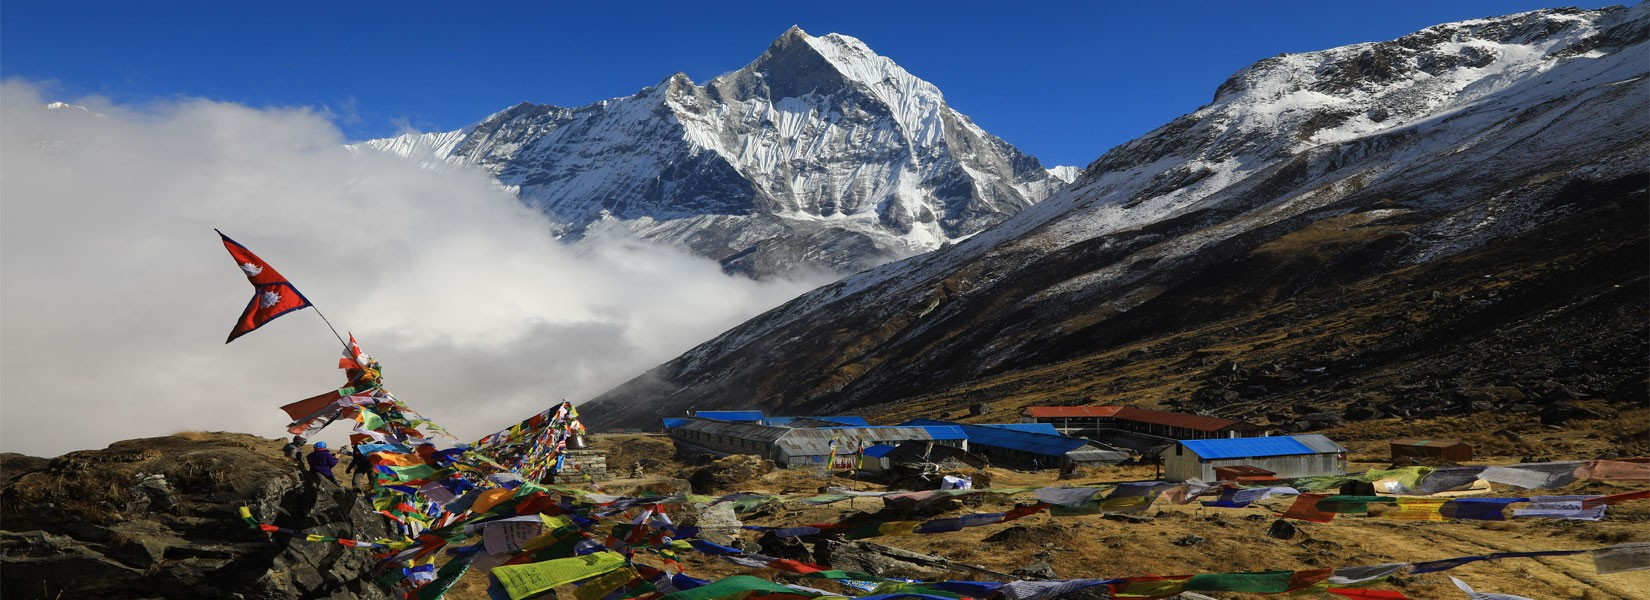 Picture from Annapurna Base Camp